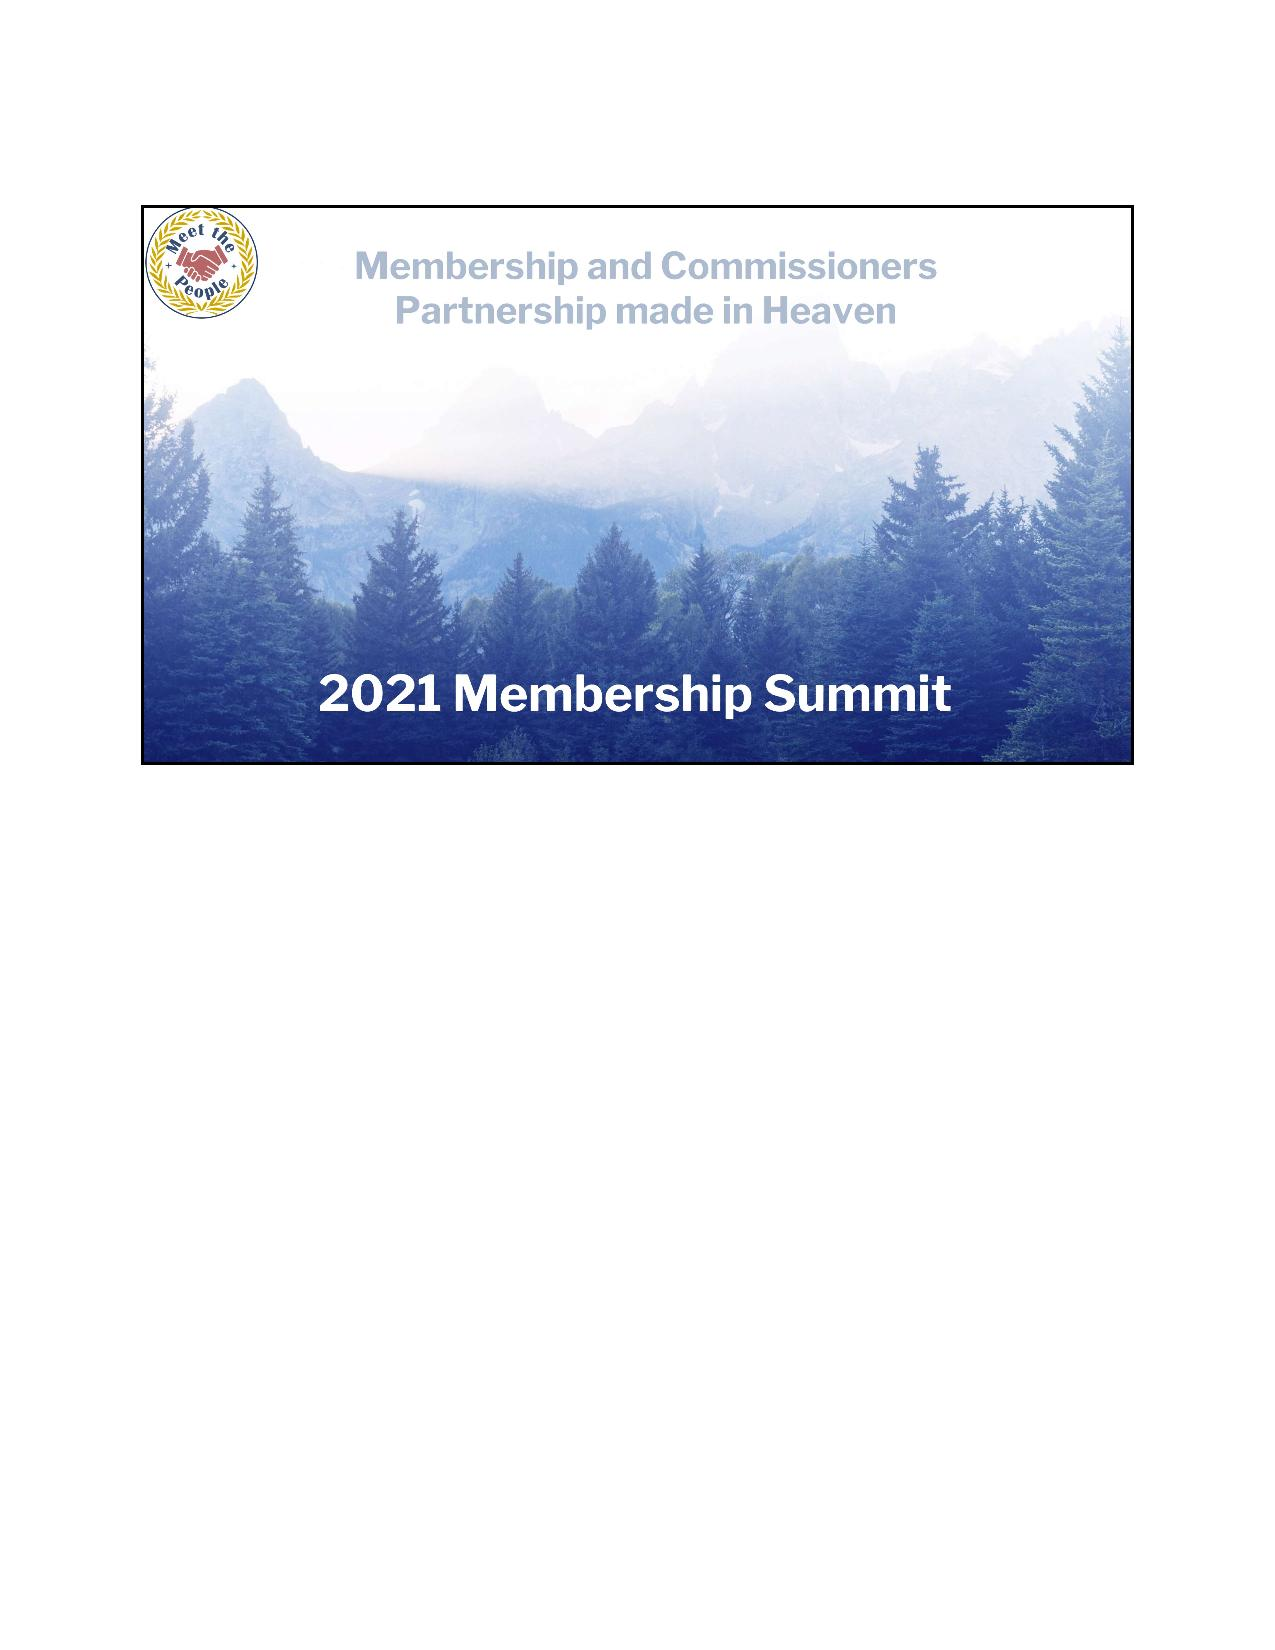 2021 Membership Summit - Commissioner Partnership Notes-page-001